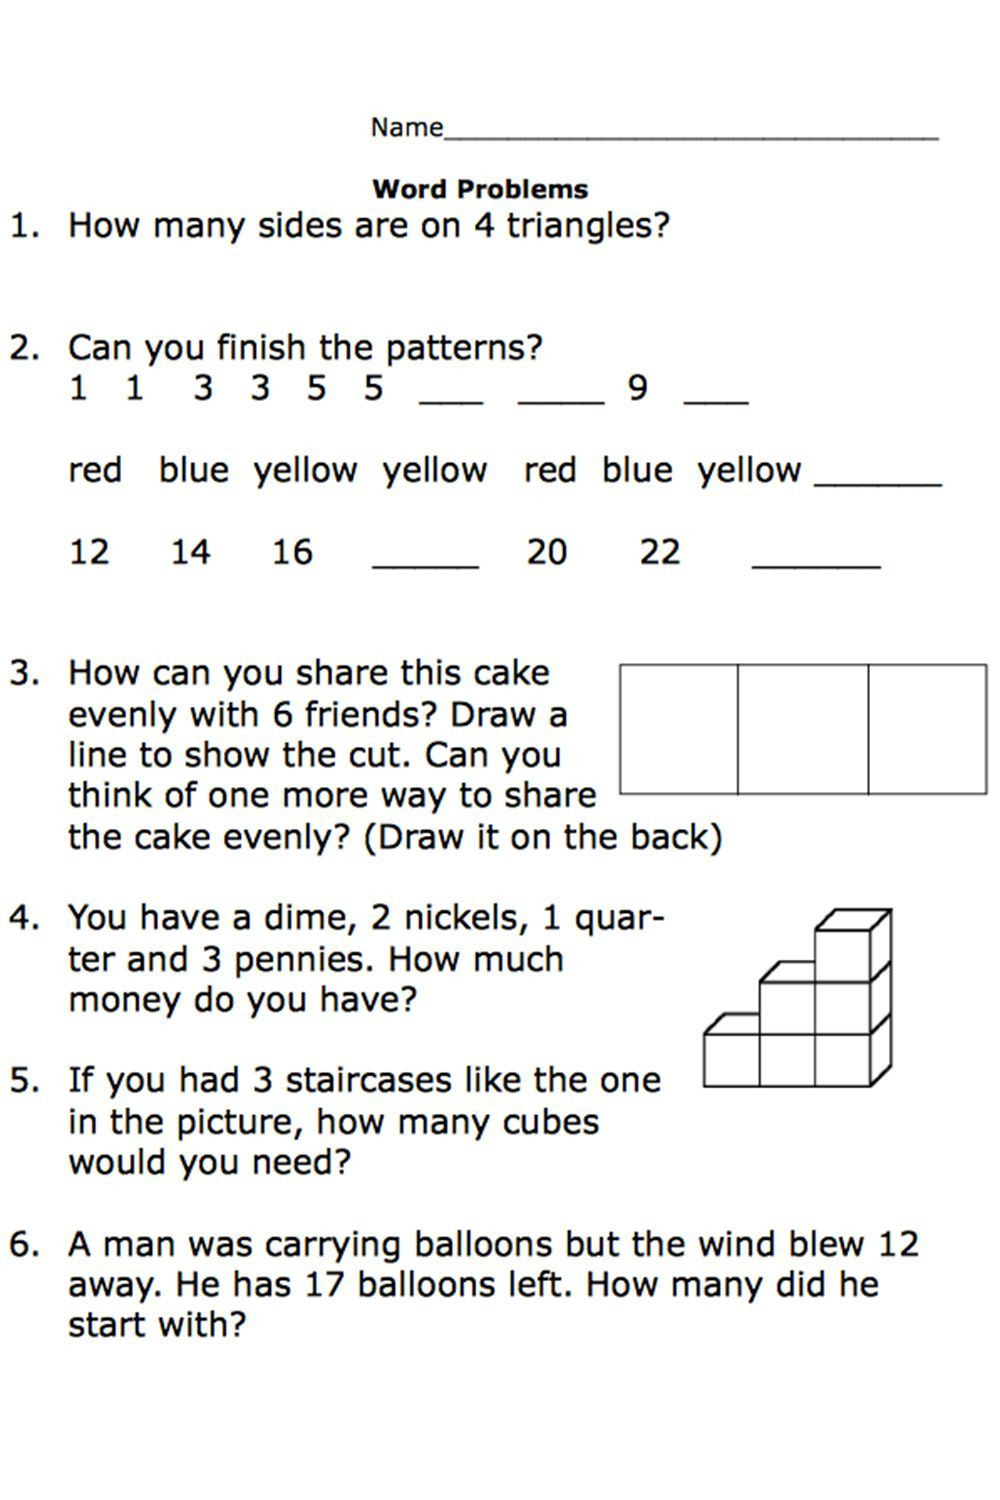 Word Problem Worksheets 1st Grade Free Printable Worksheets for Second Grade Math Word